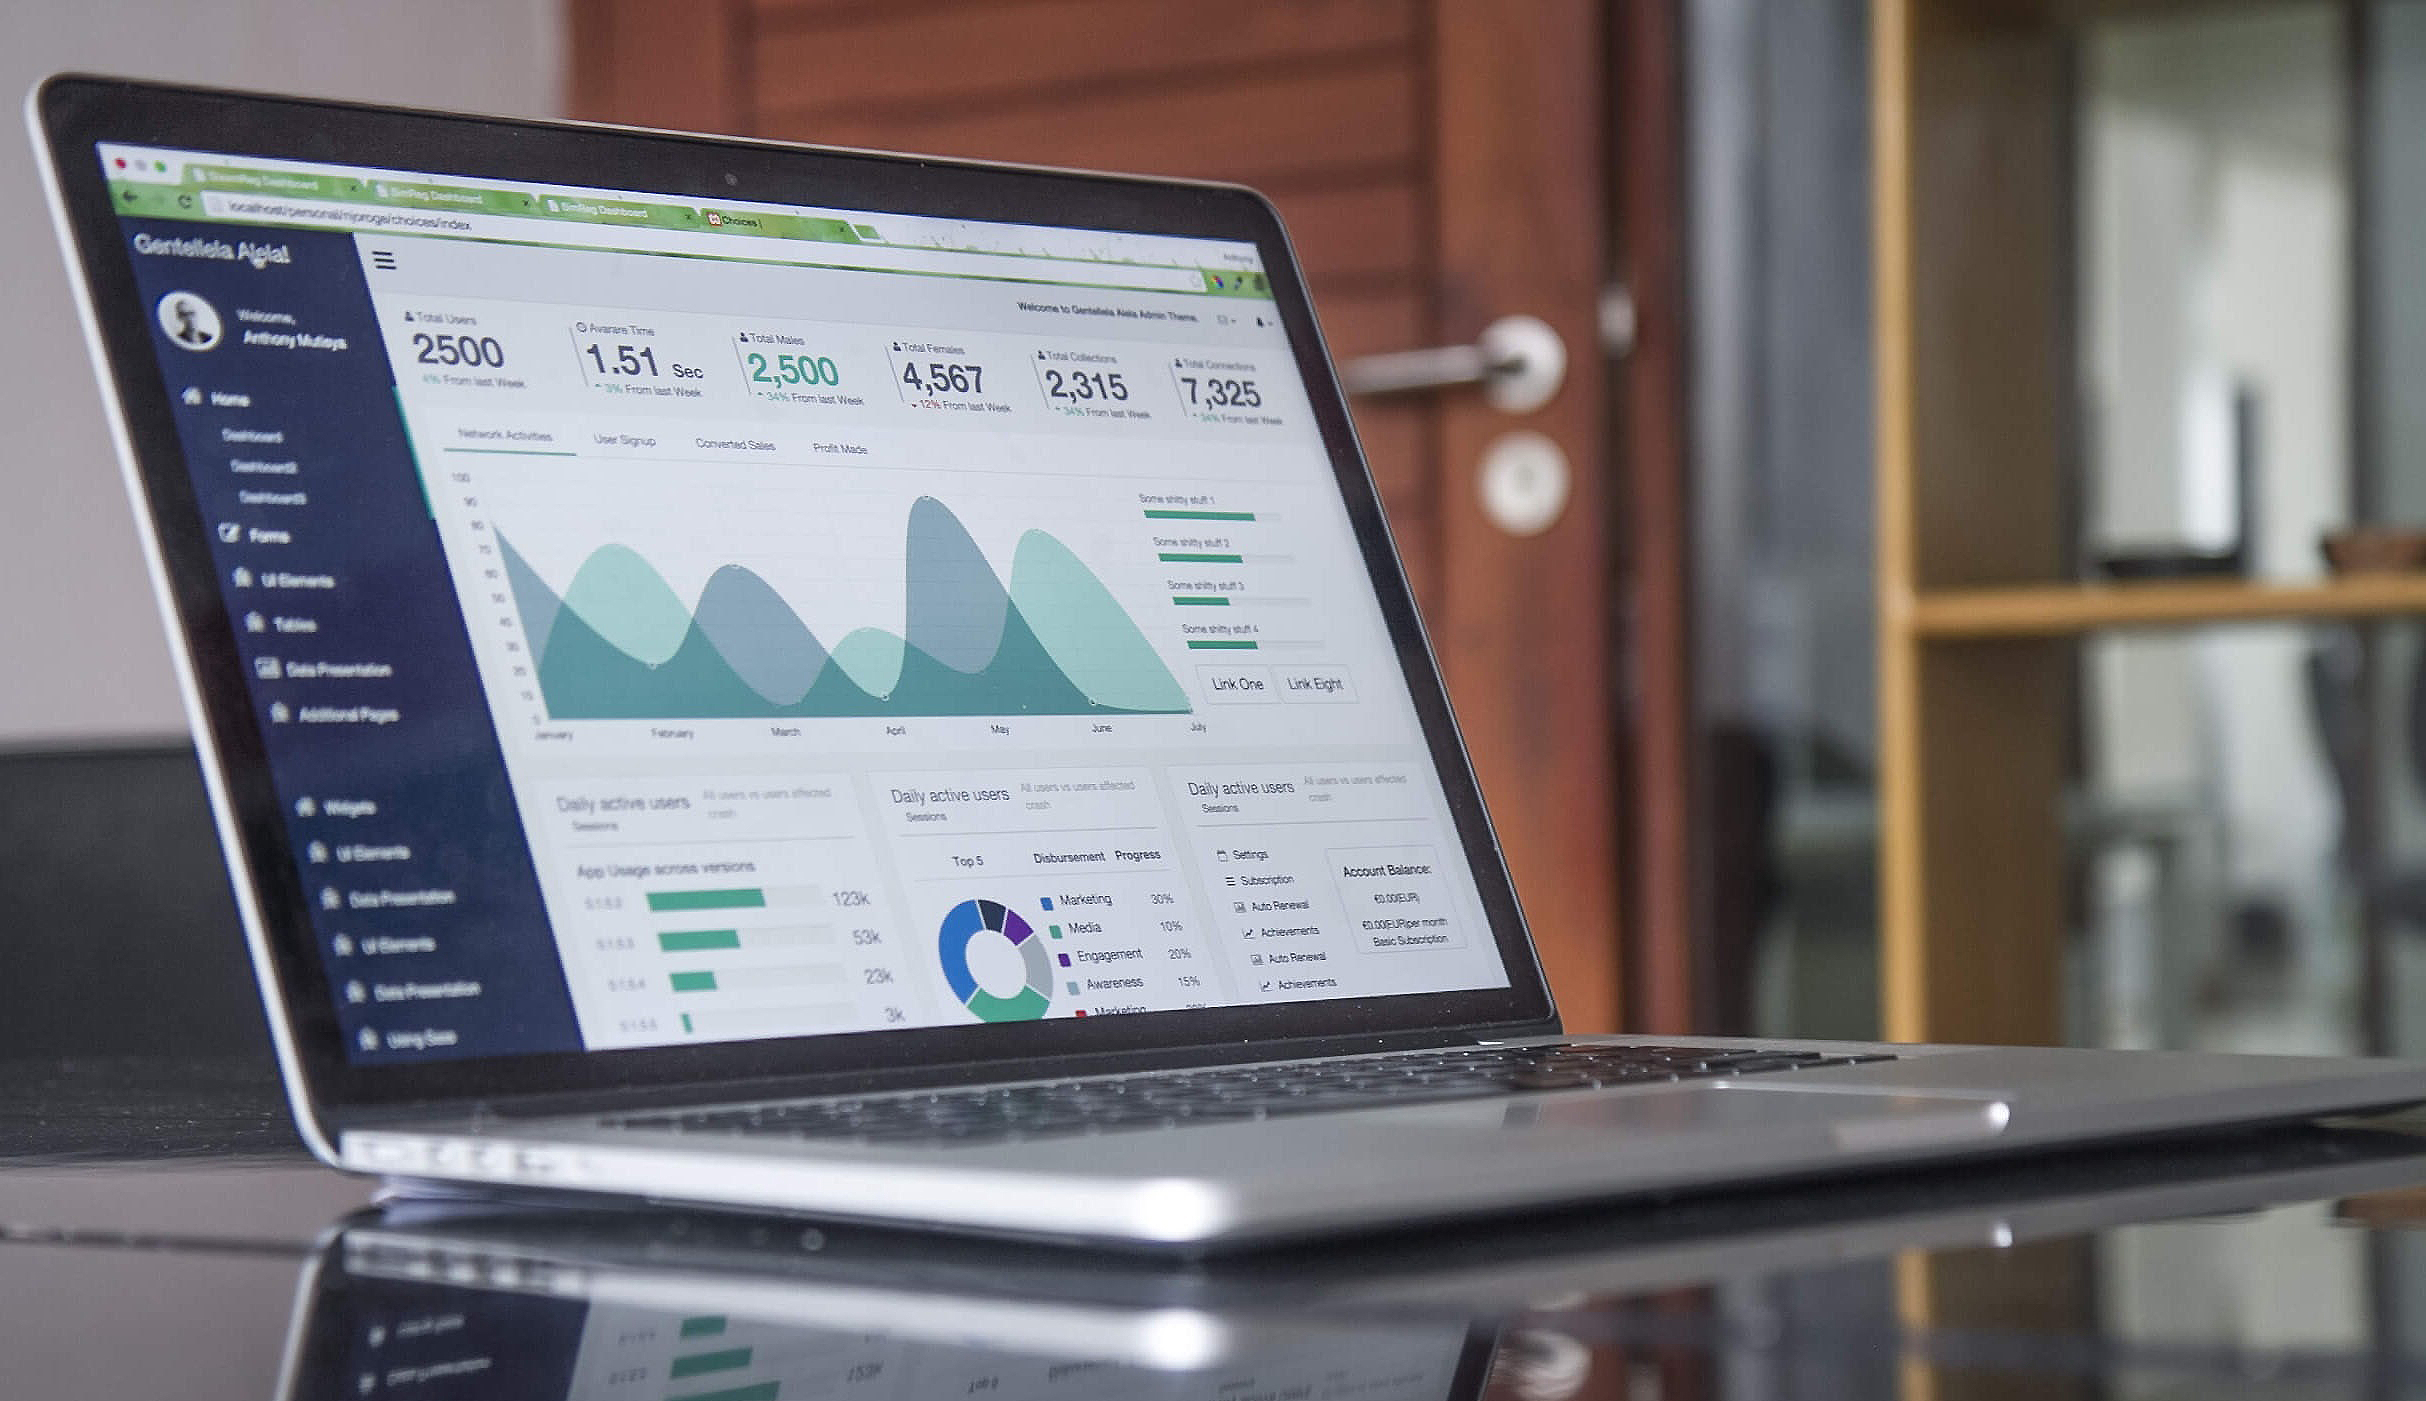 What You Need to Know: Business Analytics